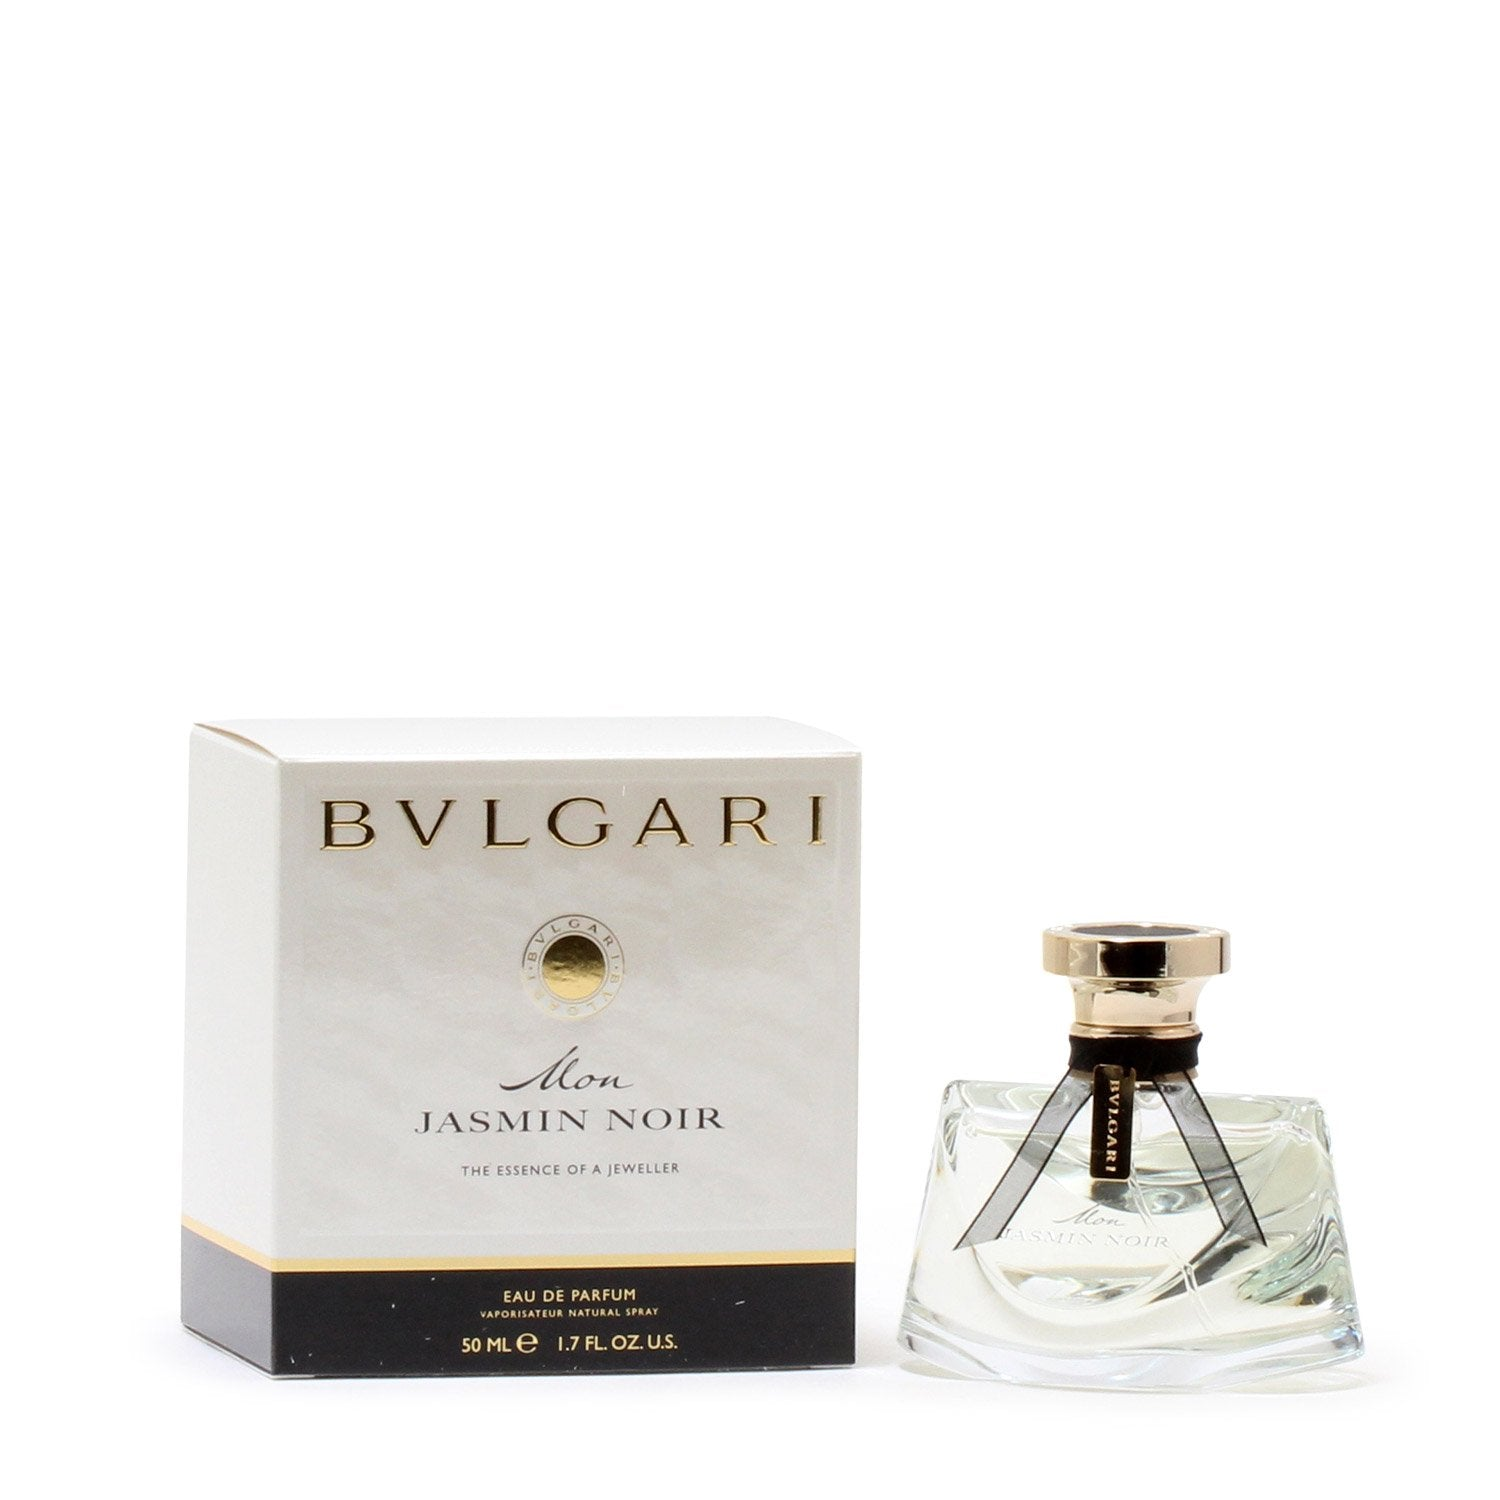 Perfume - BVLGARI MON JASMIN NOIR FOR WOMEN - EAU DE PARFUM SPRAY